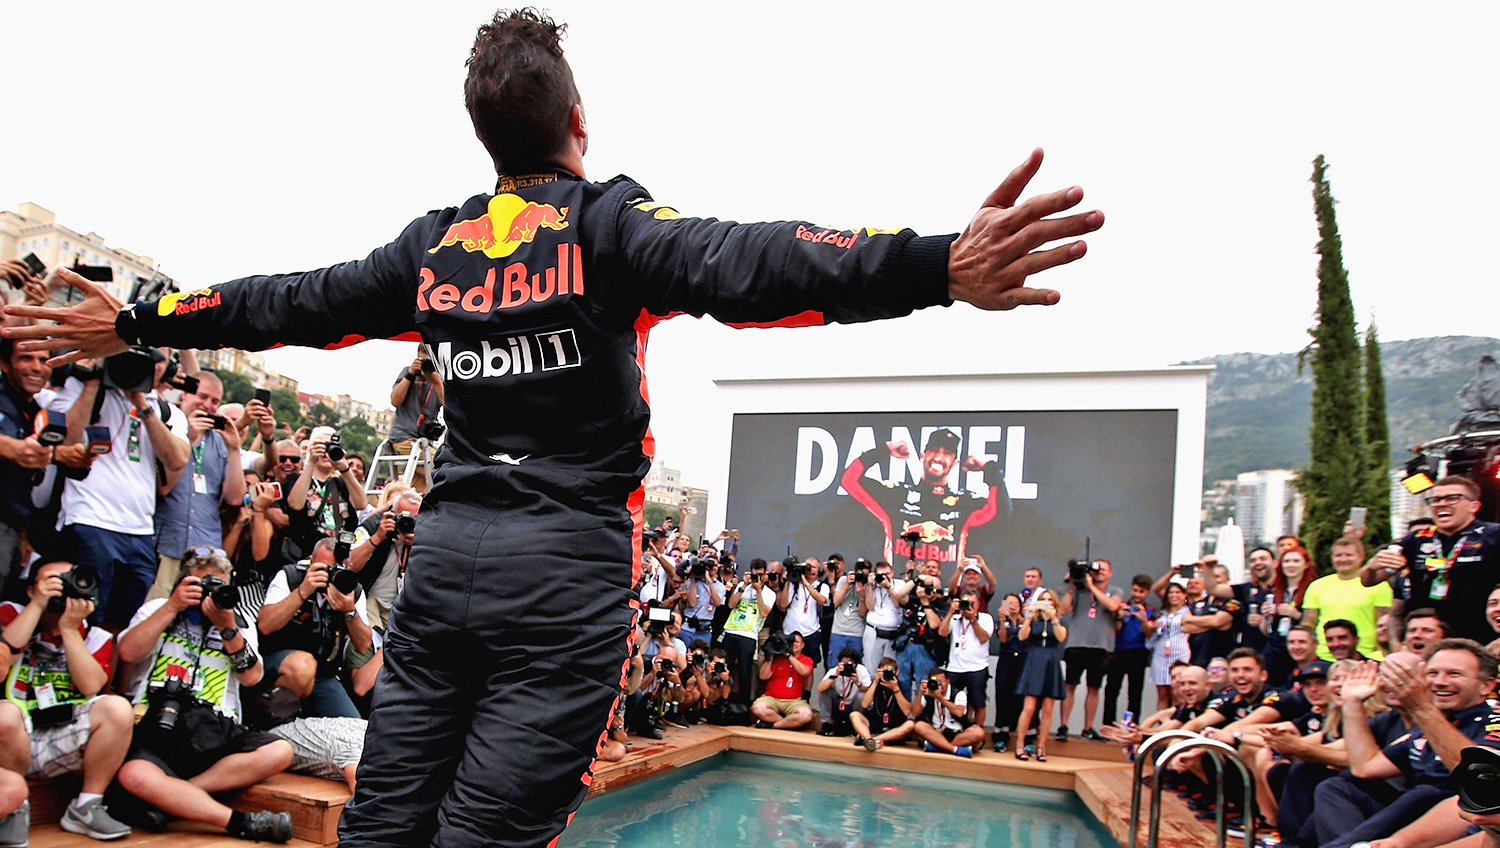 Daniel jumps in the pool following victory at the Monaco Grand Prix.